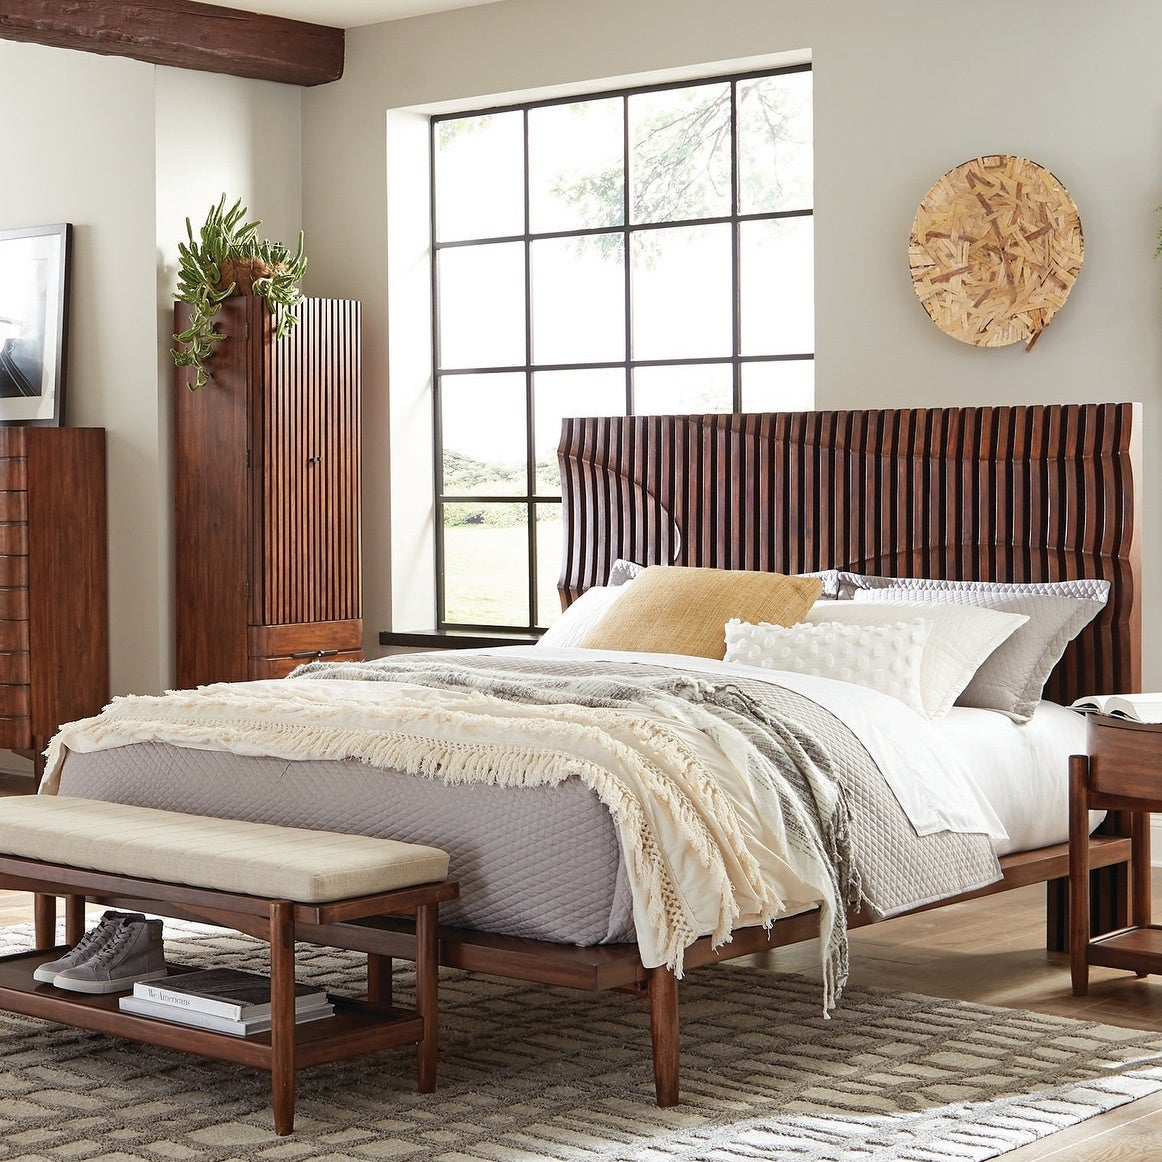 Picture of: Carson Carrington Hjalstad Teak Platform Bed Overstock 29176959